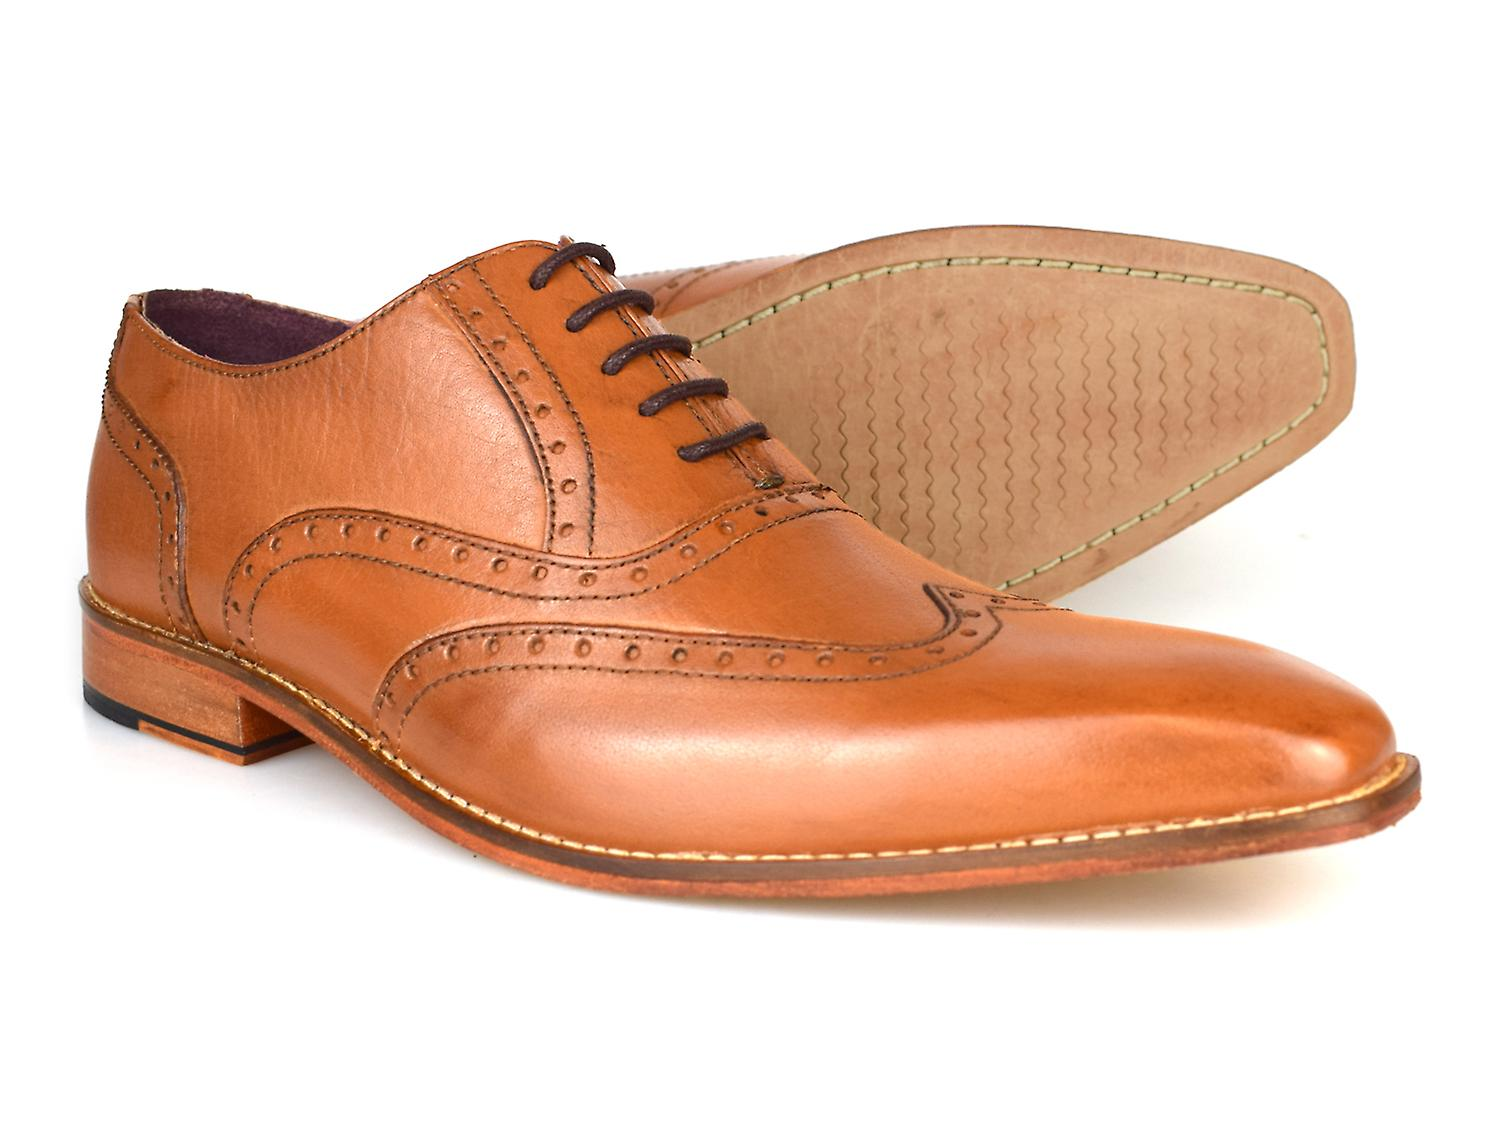 Gucinari Rothstein Tan Leather Formal Brogue Shoes AMP-20